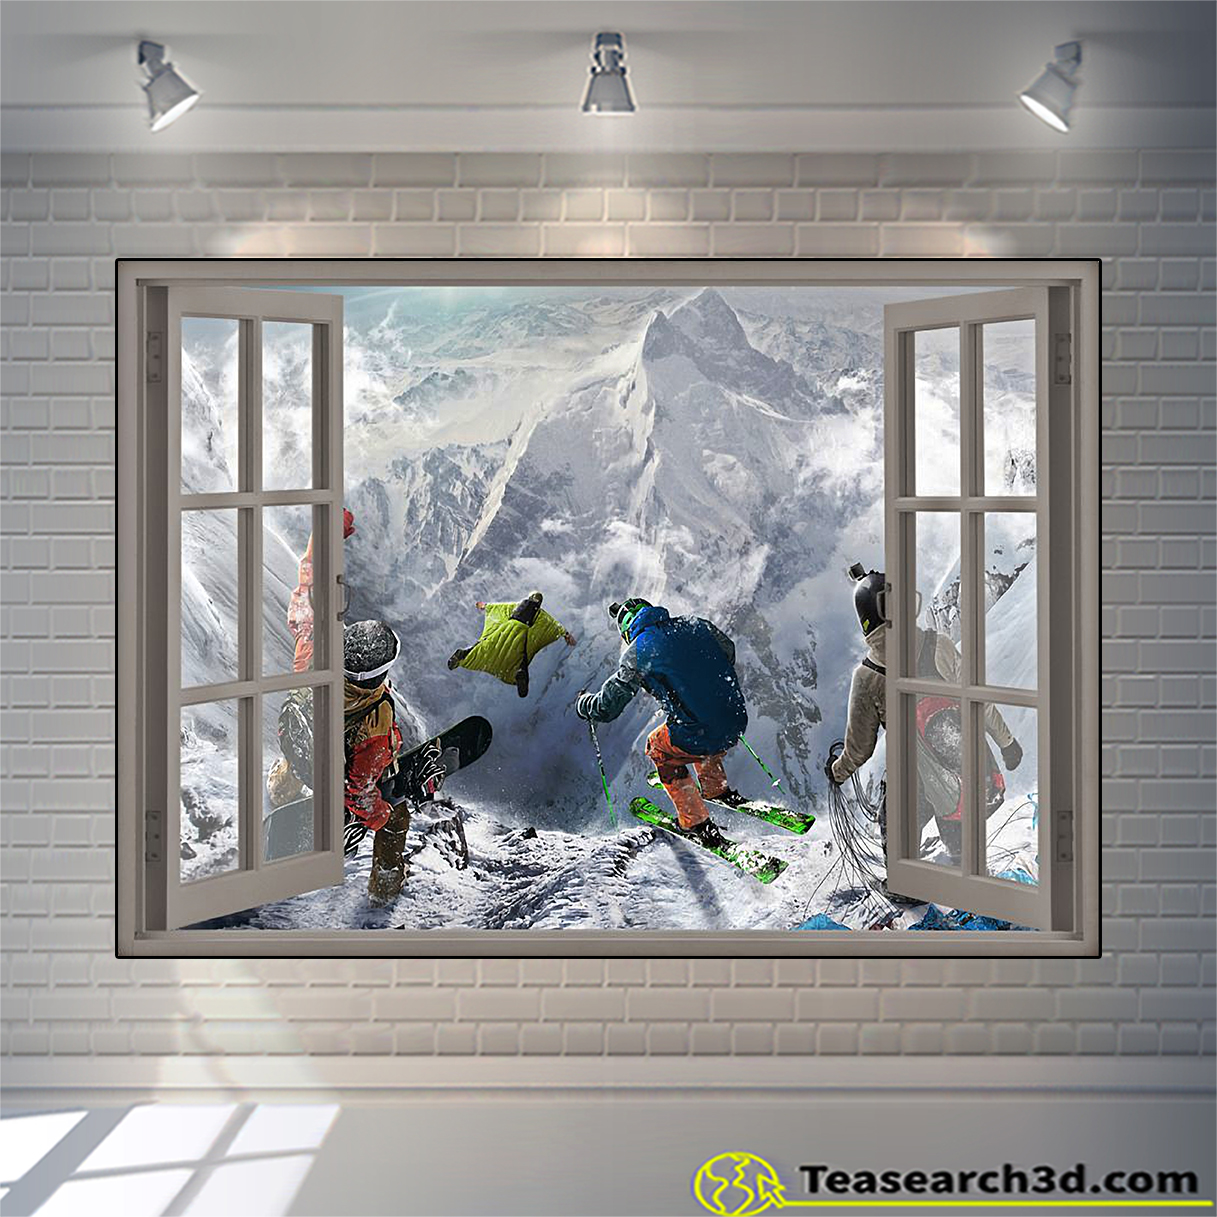 Winter sports window view poster A2